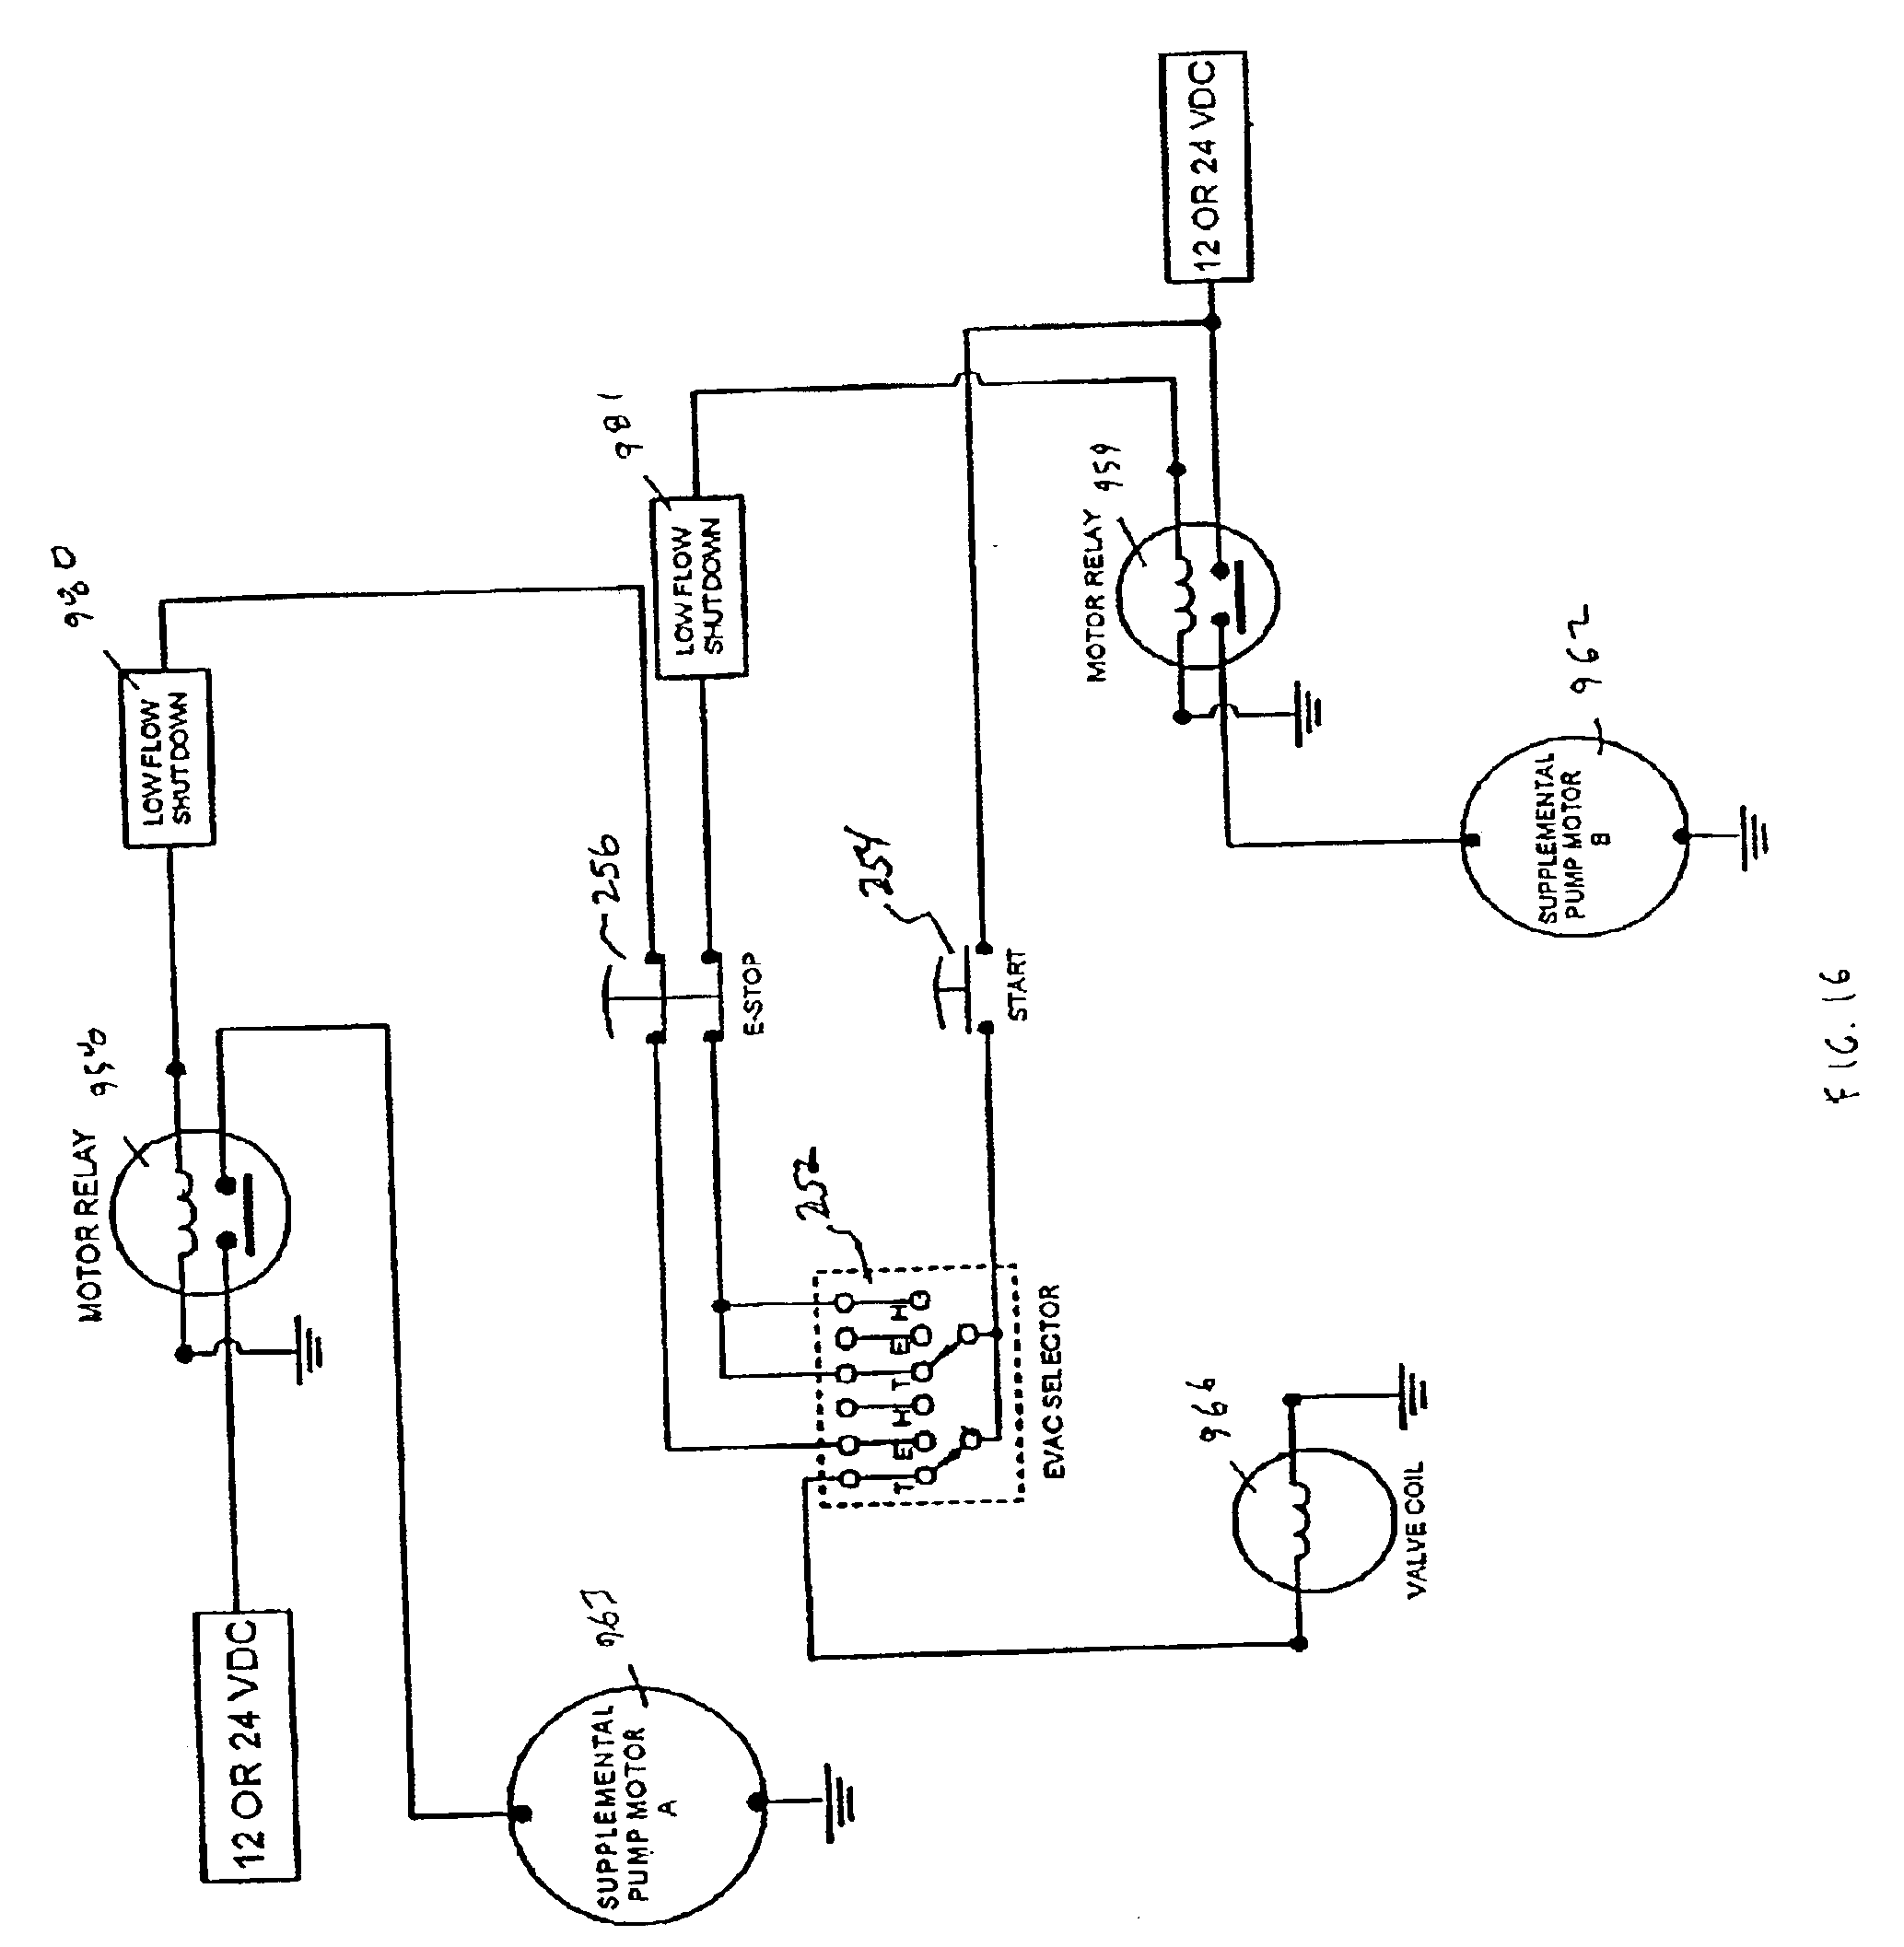 Wiring Diagram For International Tractors